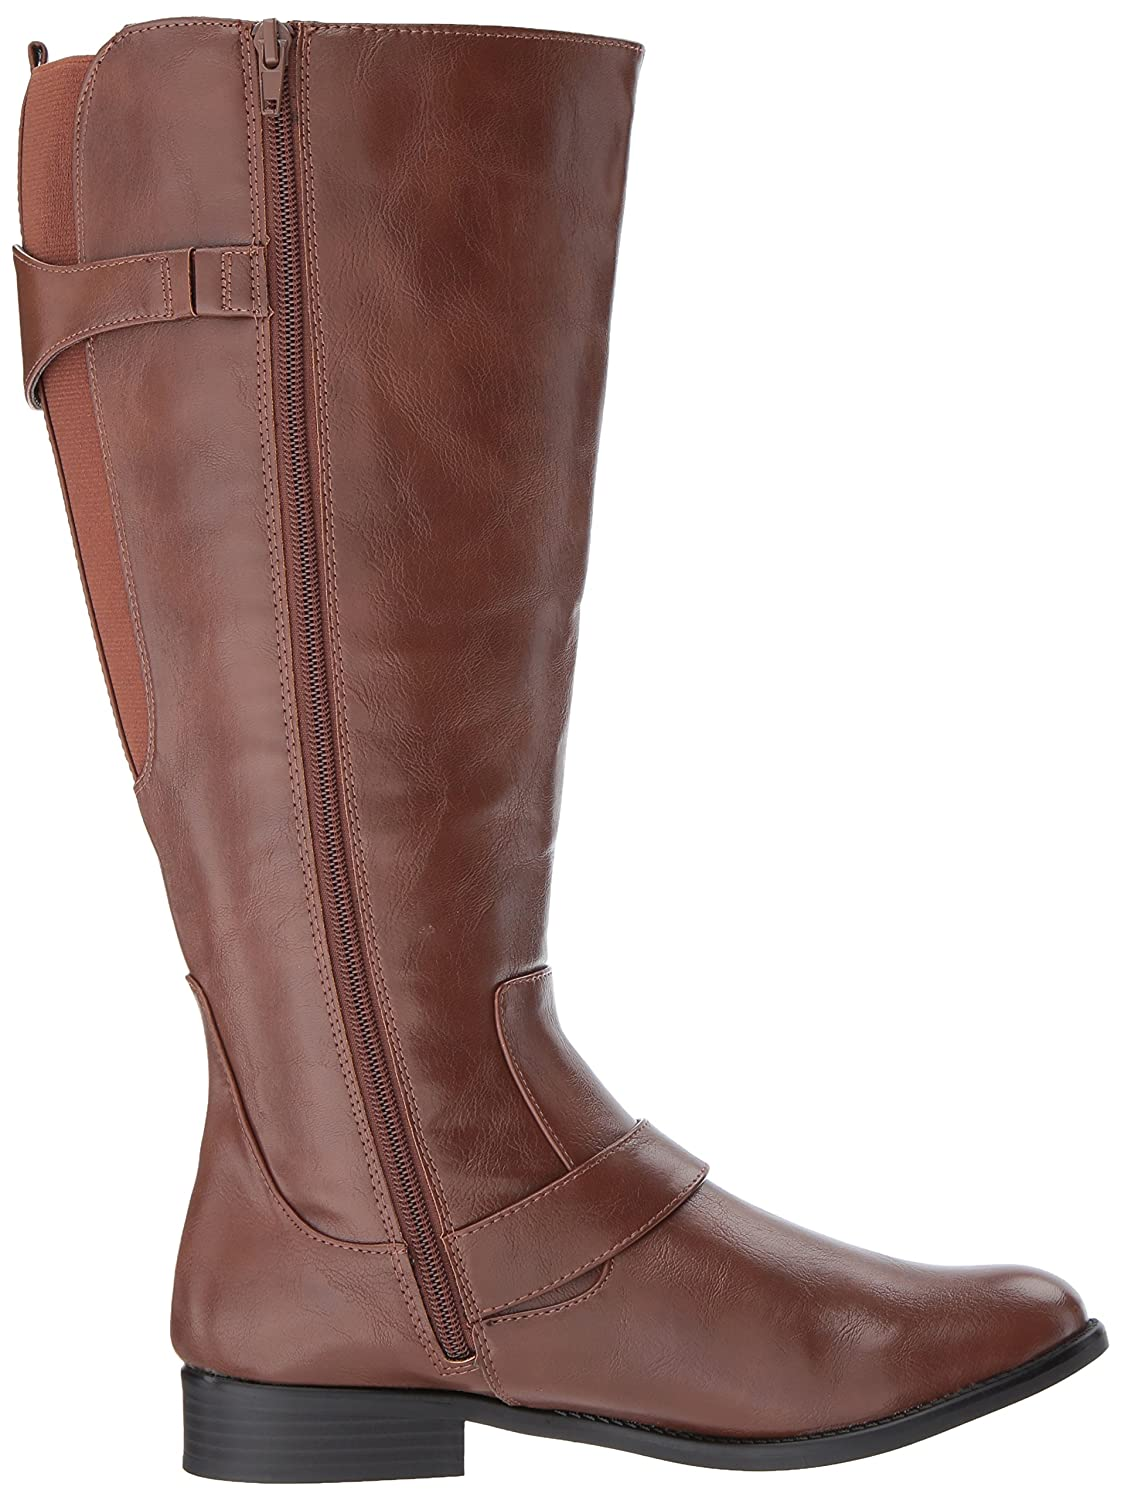 LifeStride Women's Rosaria-Wc Equestrian Boot B075G66PHG 7.5 W US|Dark Tan Wc